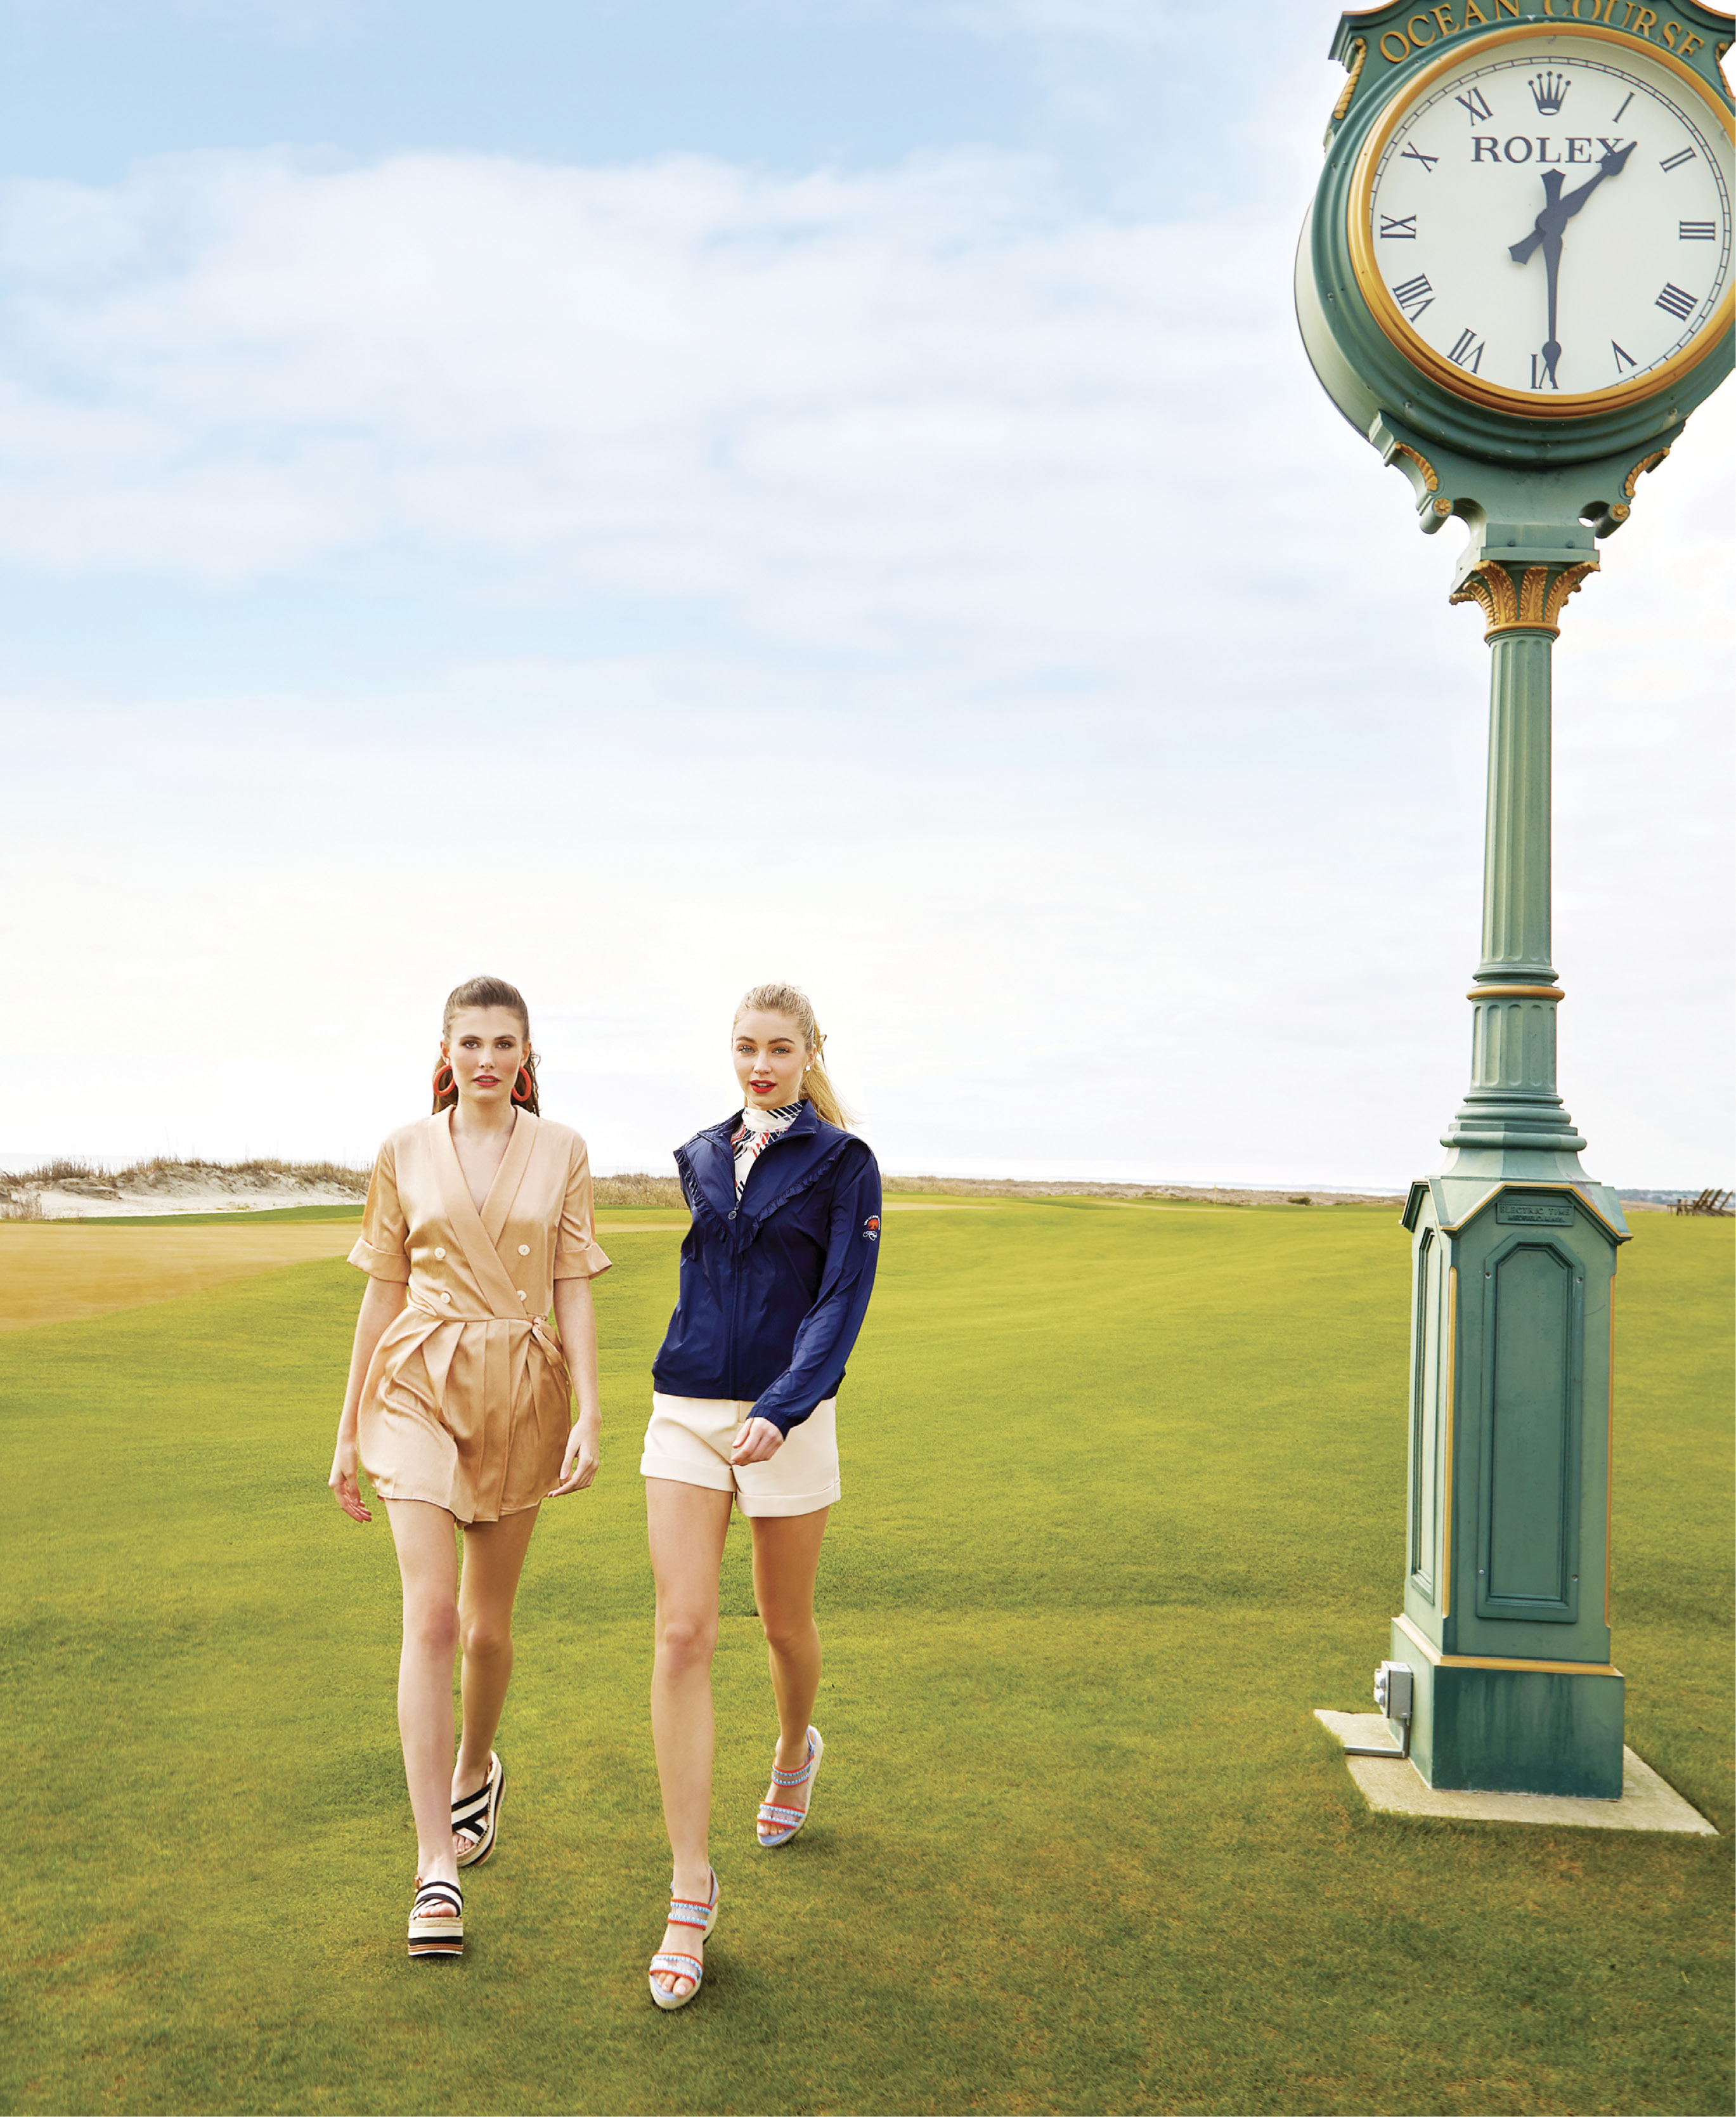 "Tee Time: (On Sara, left) Lost + Wander ""High Roller"" romper, $108 at Sapphire Boutique; Ink + Alloy beaded coral hoops, $27 at Out of Hand; Tory Burch platform espadrille sandal, $258 at Gwynn's of Mount Pleasant; (on Maddie, right & opposite) Julie Brown NYC ""Disco Tek"" top, $115 at Out of Hand; Tory Sport ruffle windbreaker, $208 at The Ocean Course at Kiawah Island Pro Shop; ""Luxe"" shorts in ""taupe,"" $72 at Maris DeHart; Little Fish Boateak coin pearl studs, $24 at Woodhouse Day Spa; Castañer ""Xully"" wedge sandals, $345 at Shoes on King"